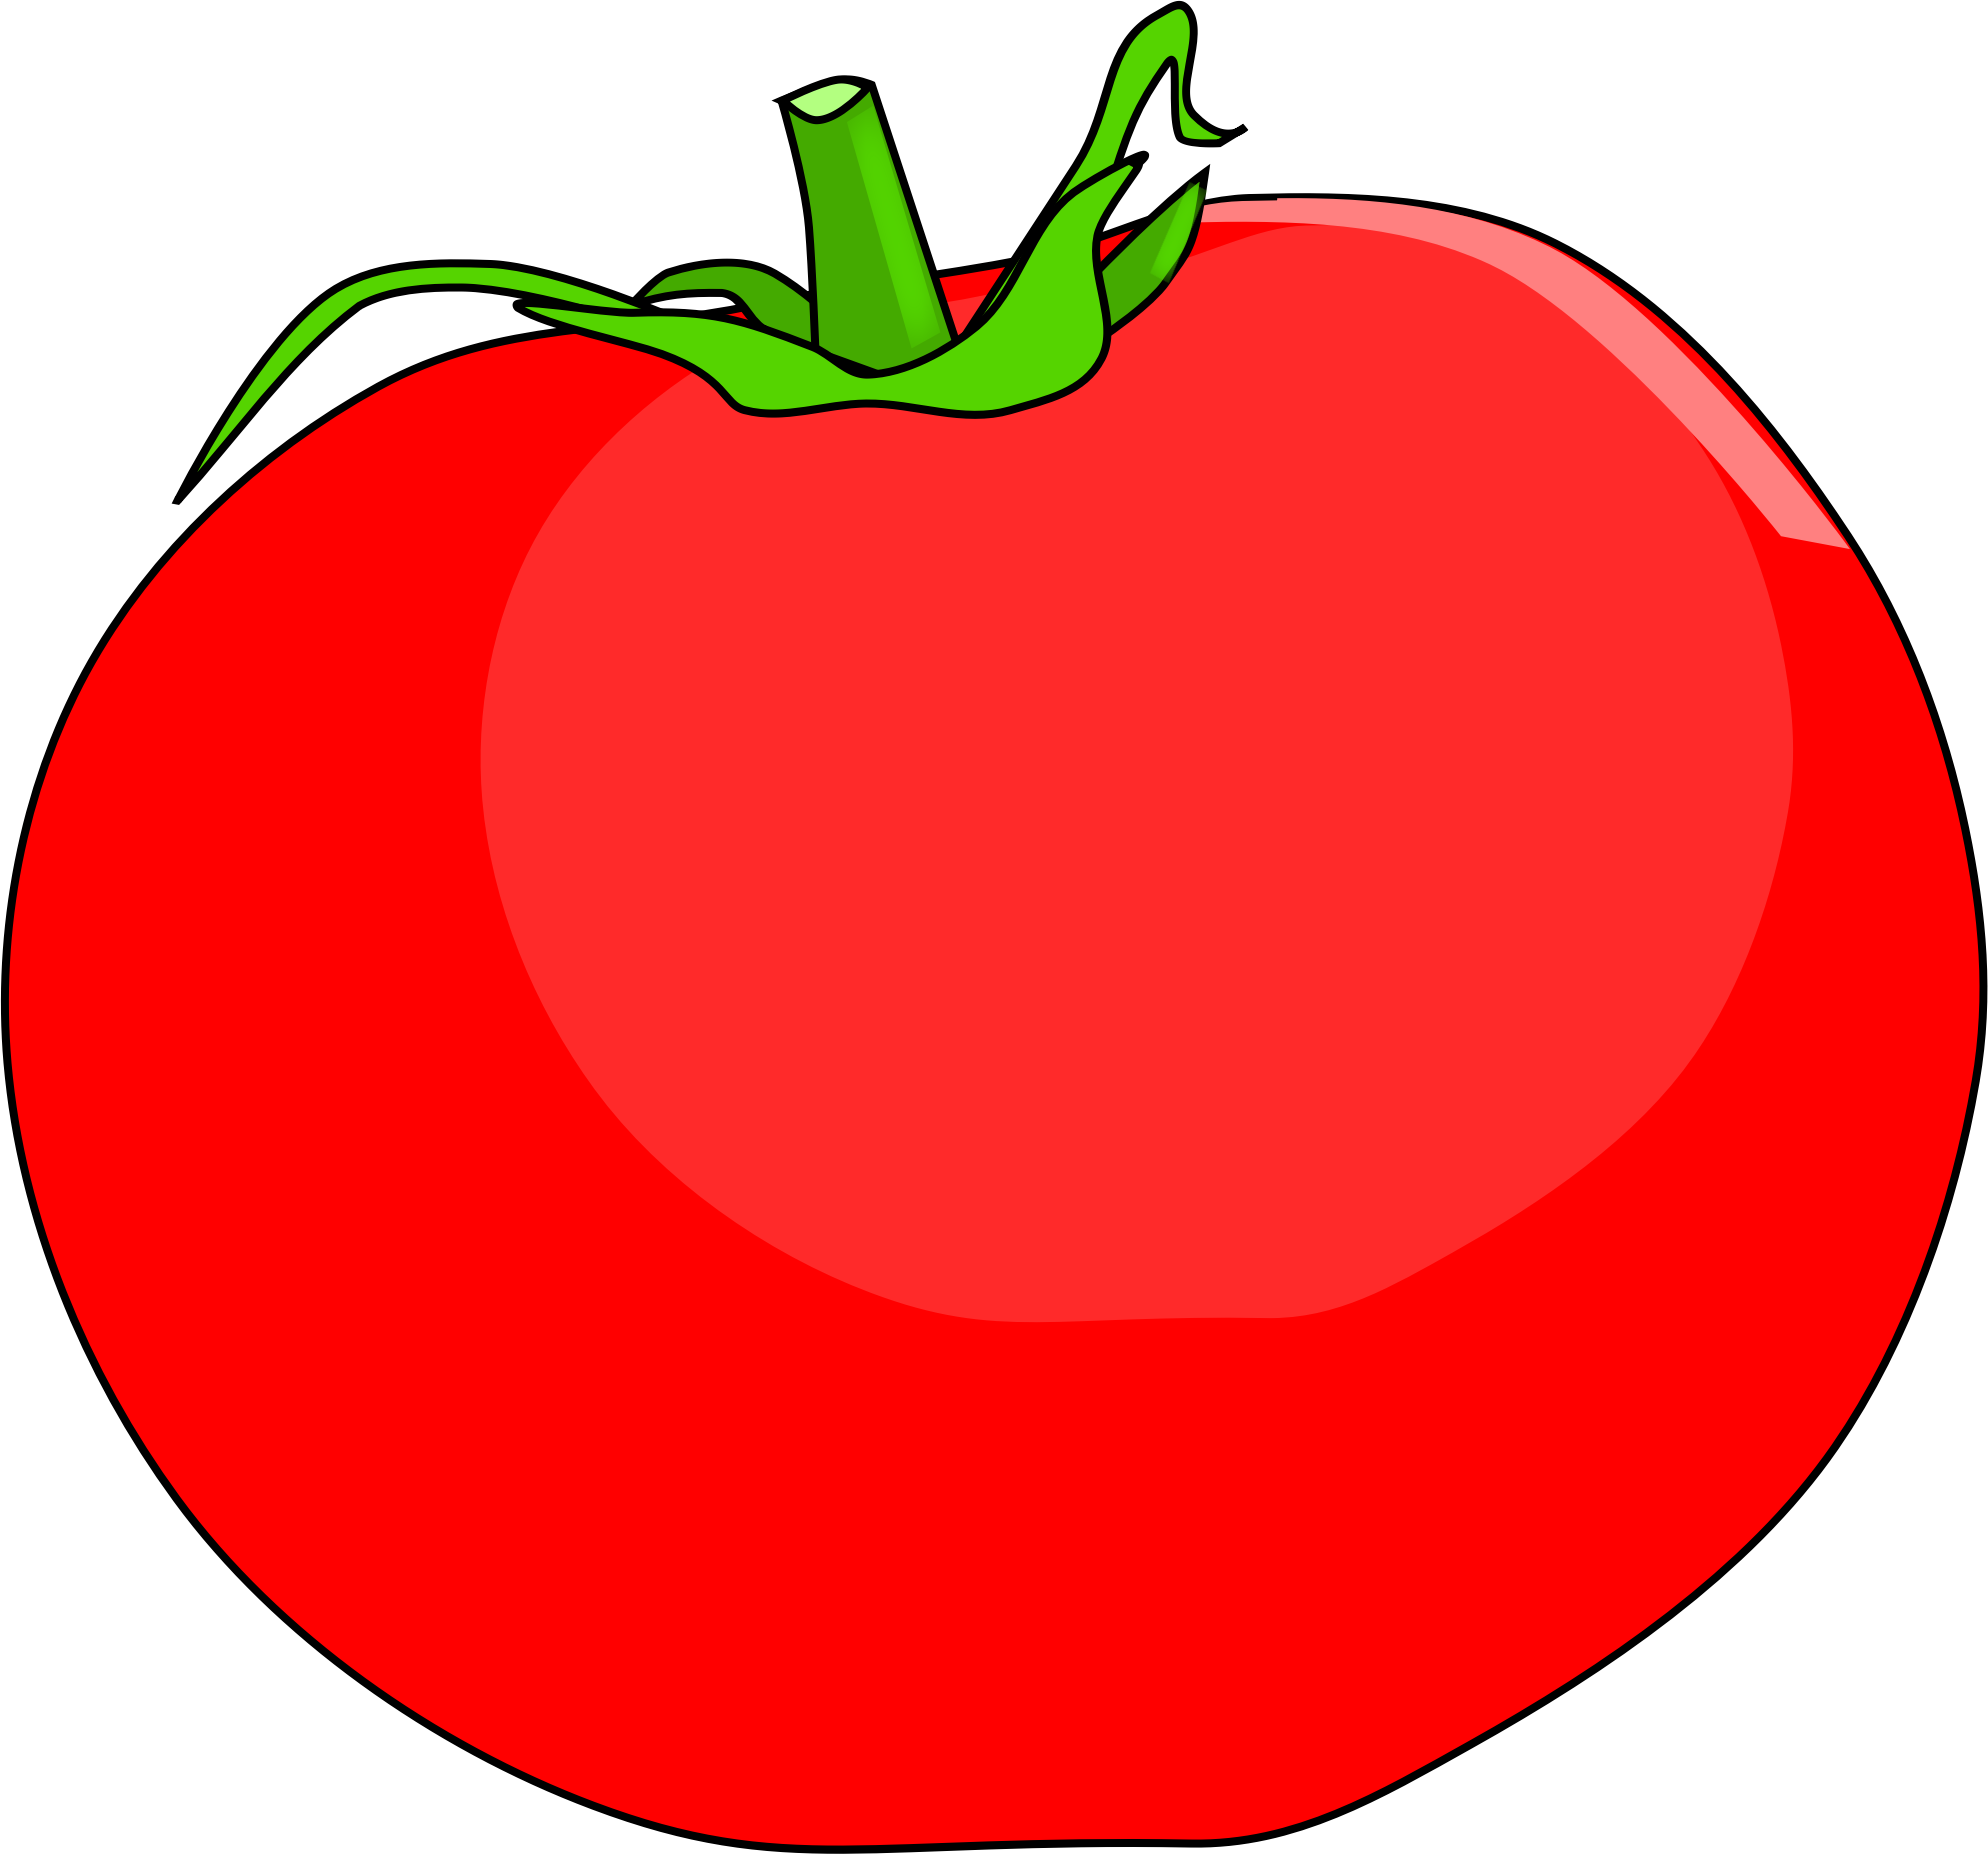 Tomatoes clipart buah. Tomato big image png